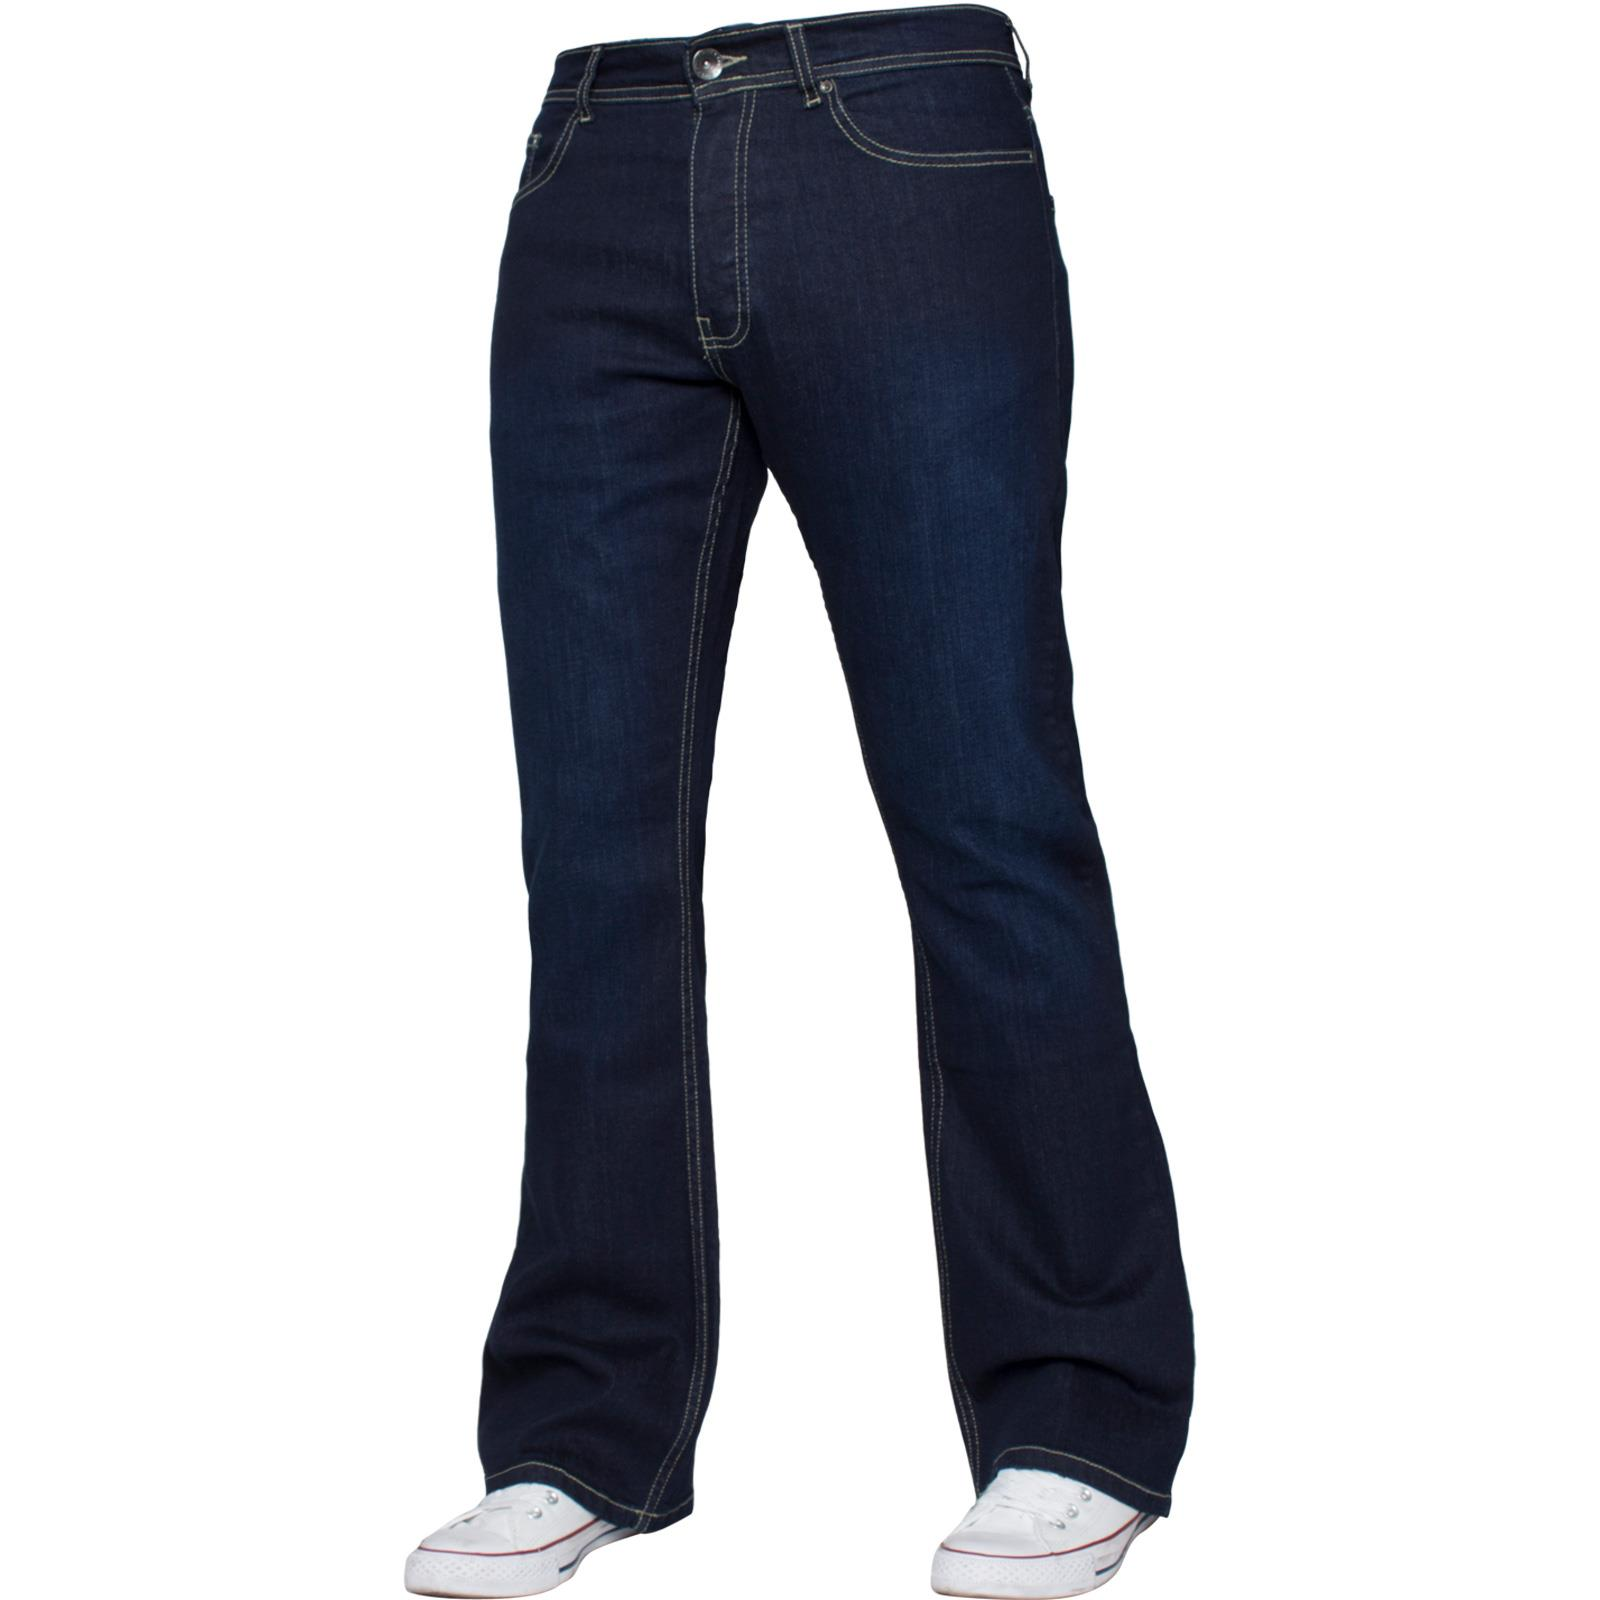 Mens-Straight-Bootcut-Jeans-Stretch-Denim-Pants-Regular-Fit-Big-Tall-All-Waists thumbnail 47